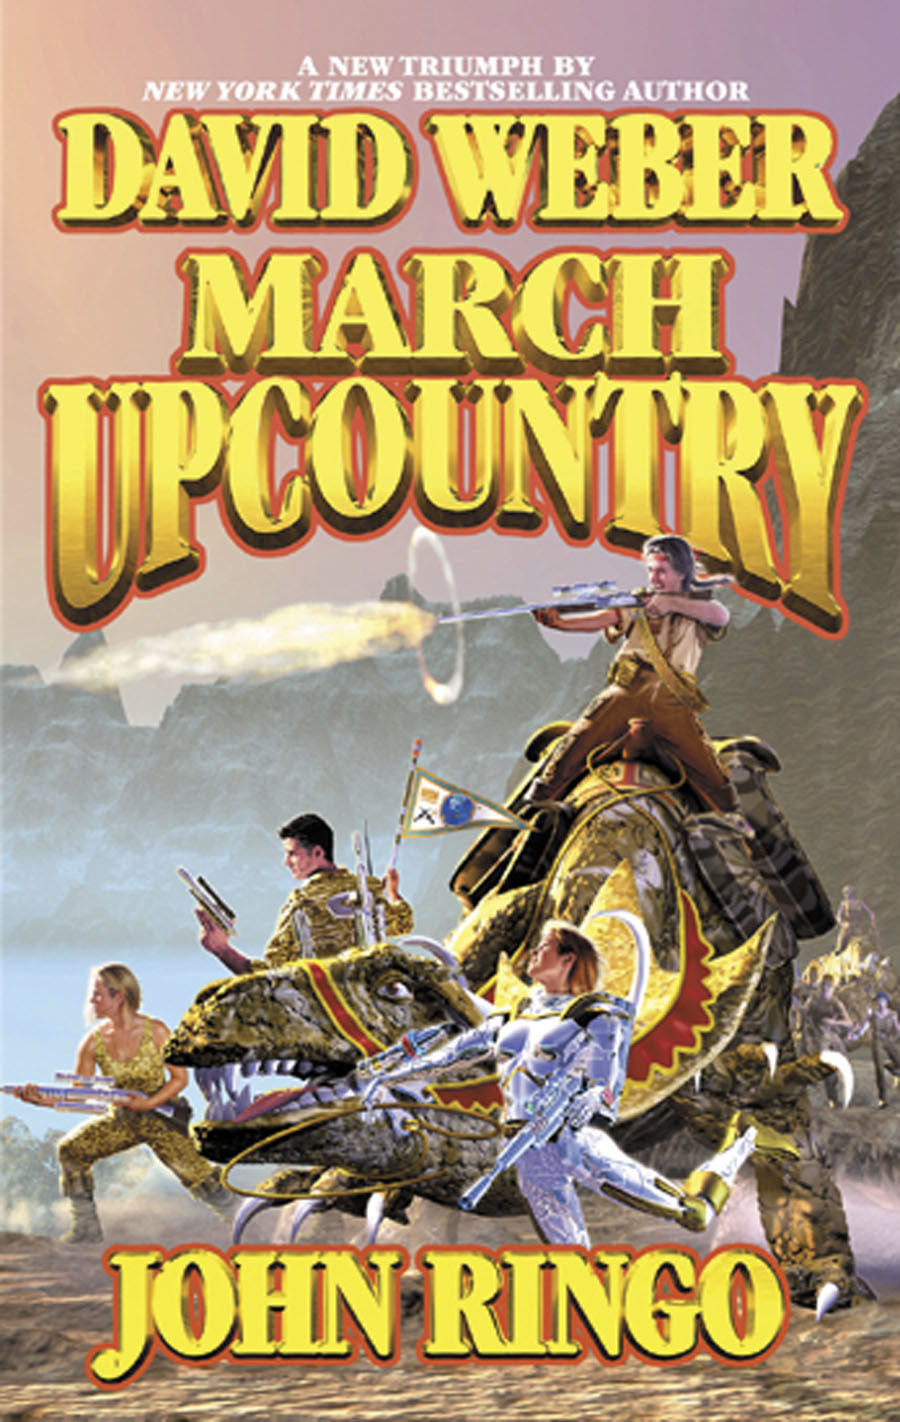 March Upcountry